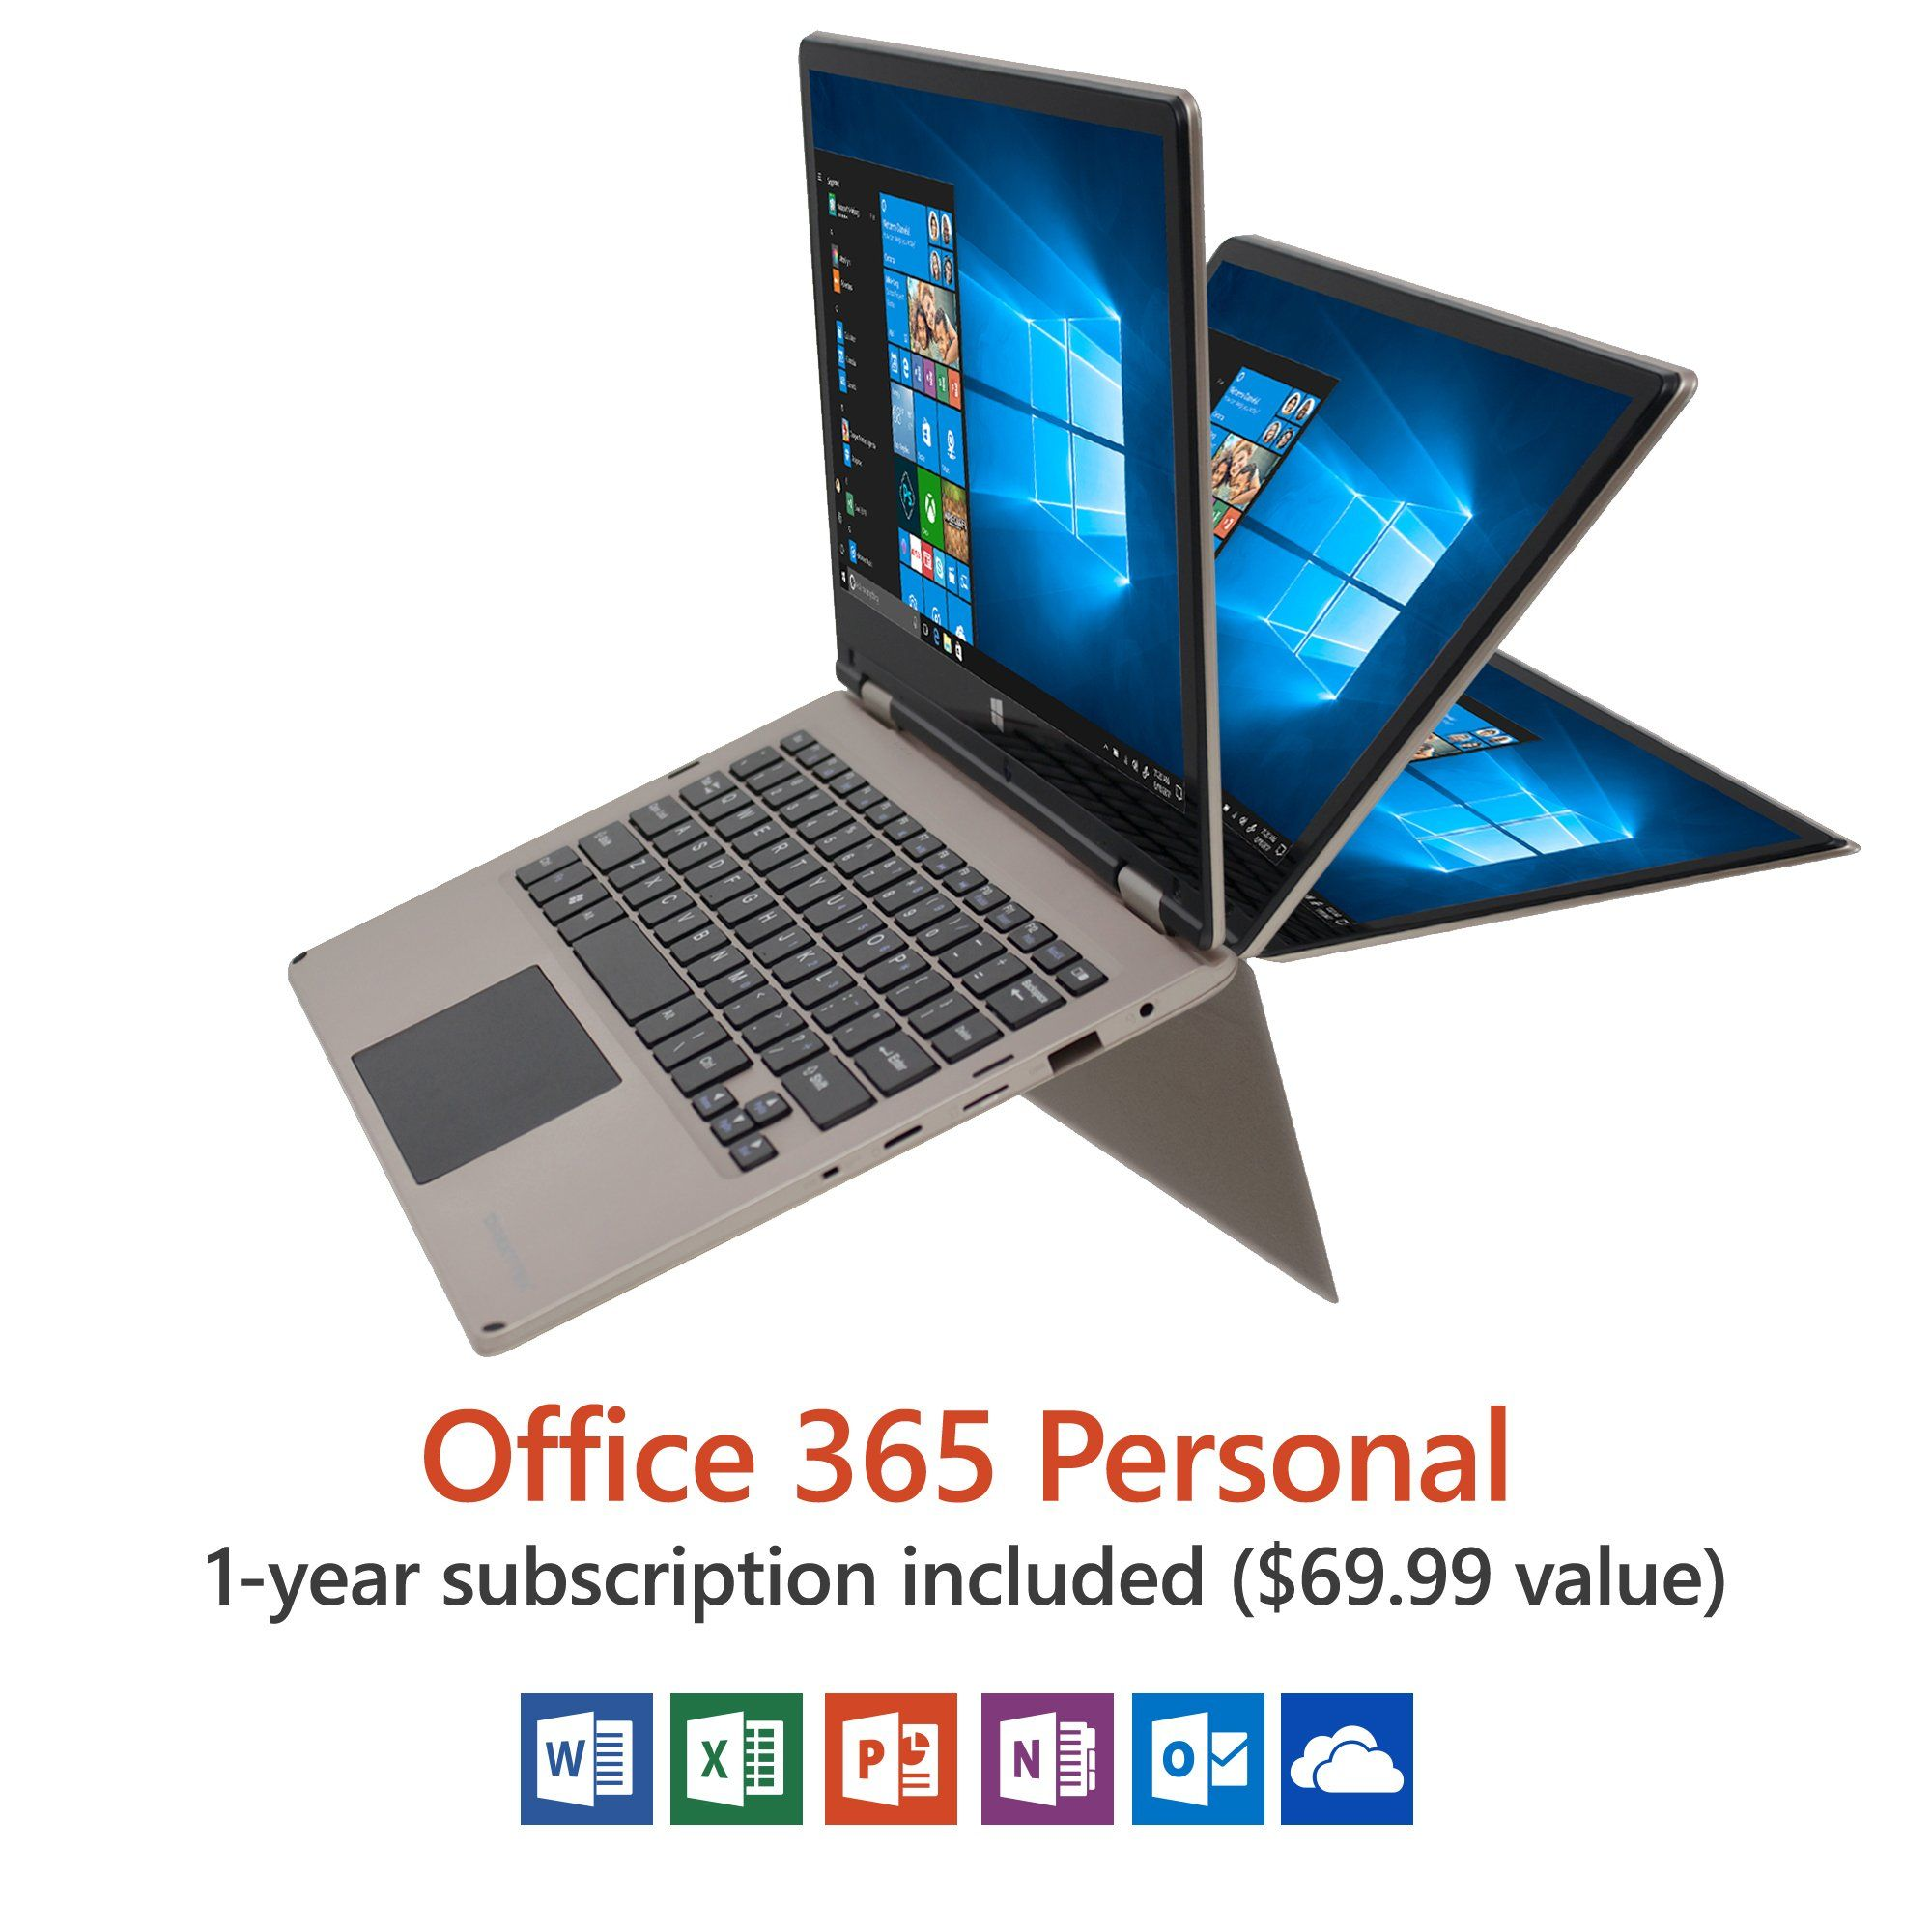 11 6 Convertible Touch Laptop Windows 10 Home Office 365 Personal